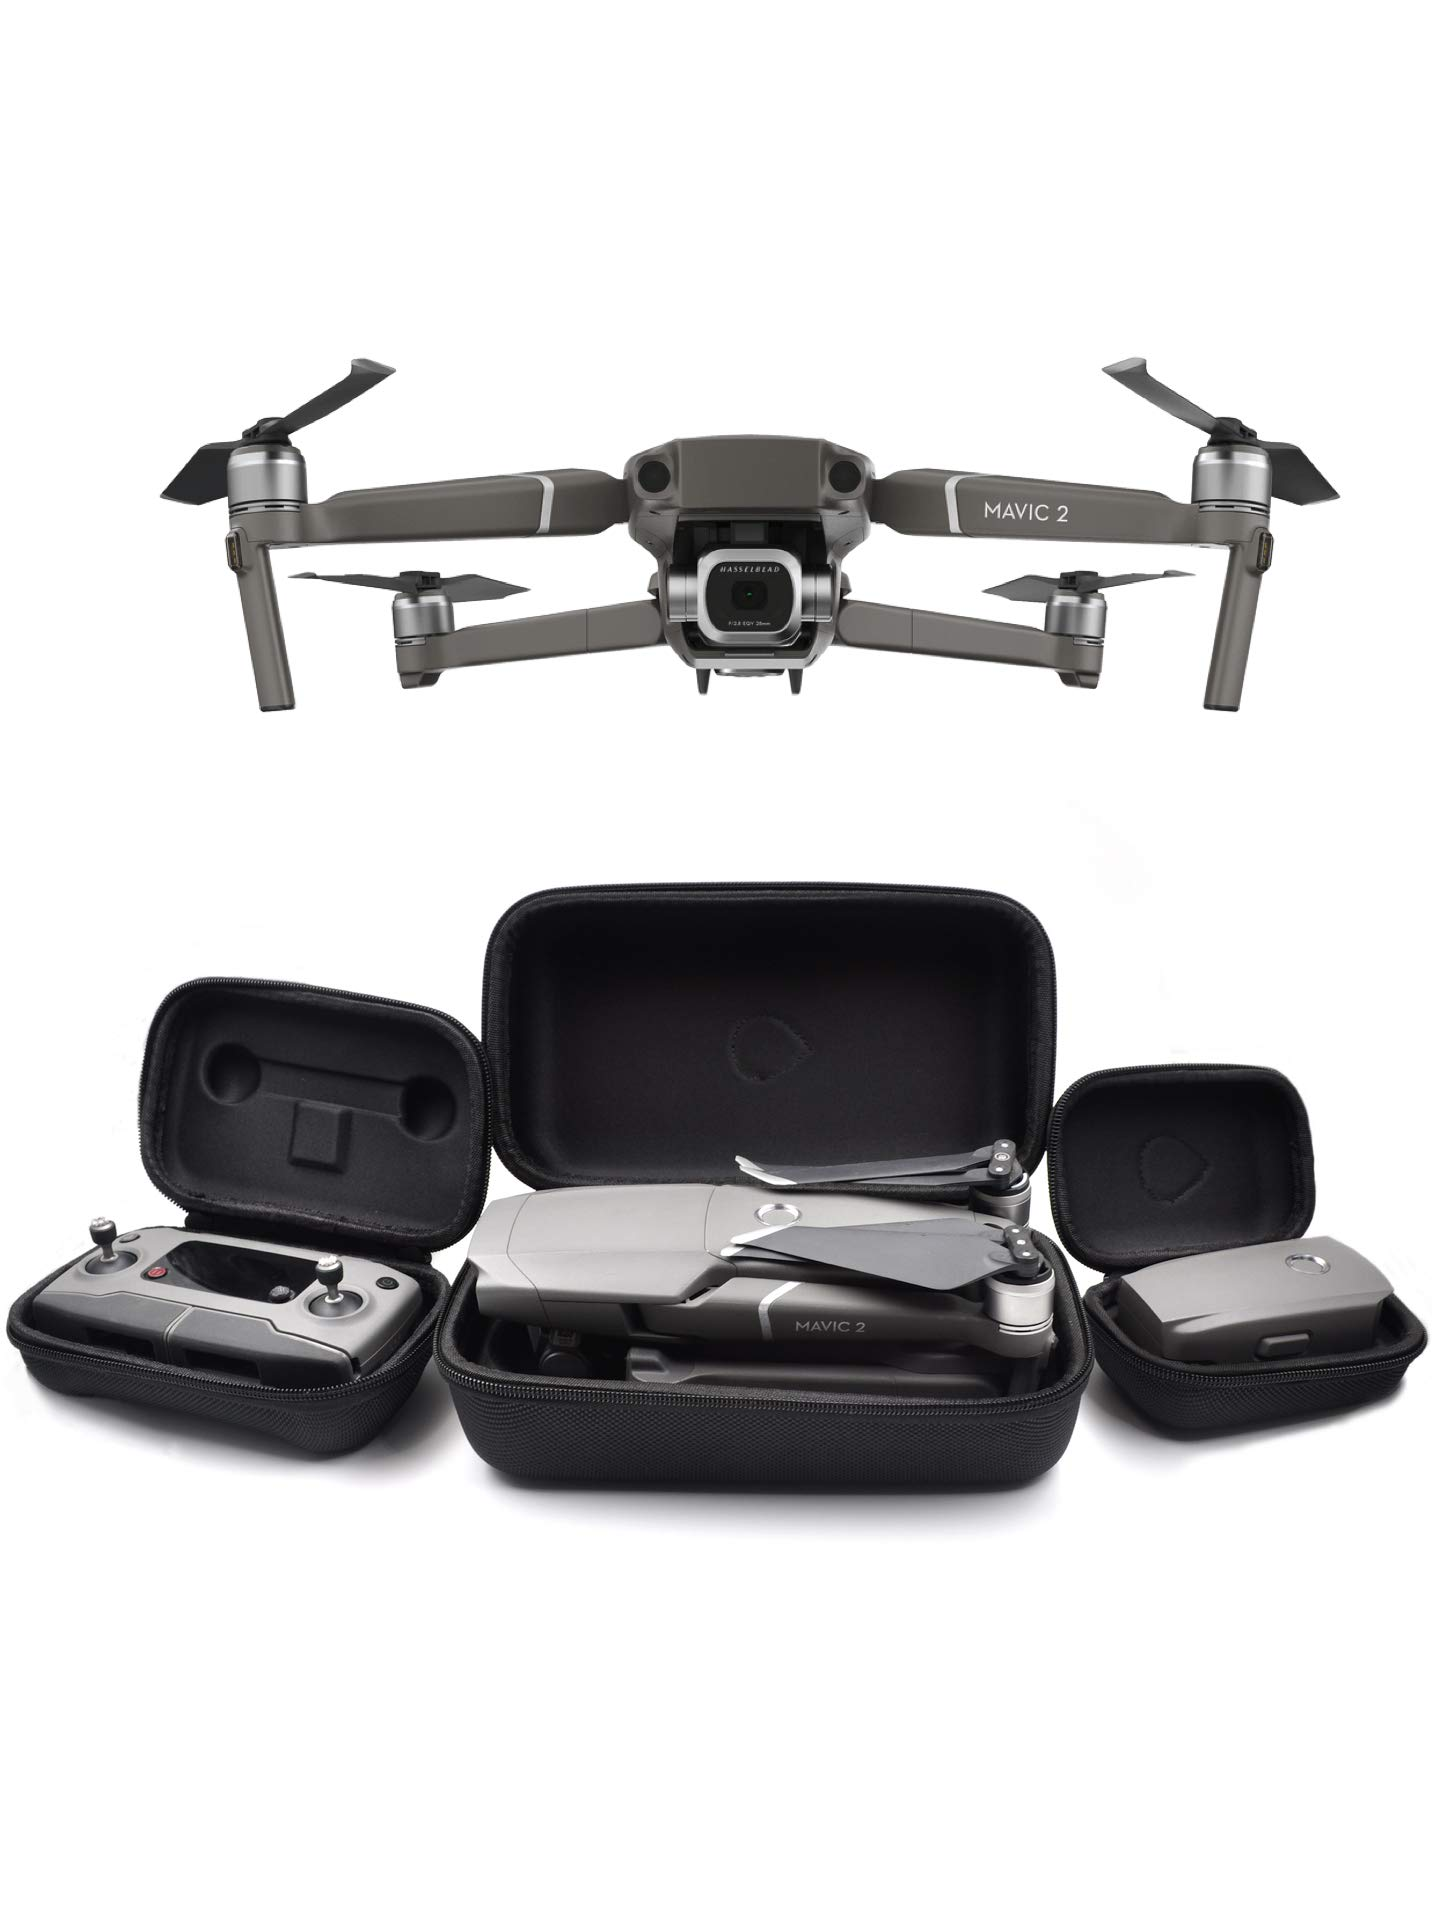 GoScope Mavic 2 Go Case: Compatible with Mavic 2 Pro and Mavic 2 Zoom - Adventure/Travel Water-Resistant Nylon Hard Case - DJI Mavic 2 Zoom/Pro Hard Case for Aircraft Body, Controller, and Battery by GOSCOPE